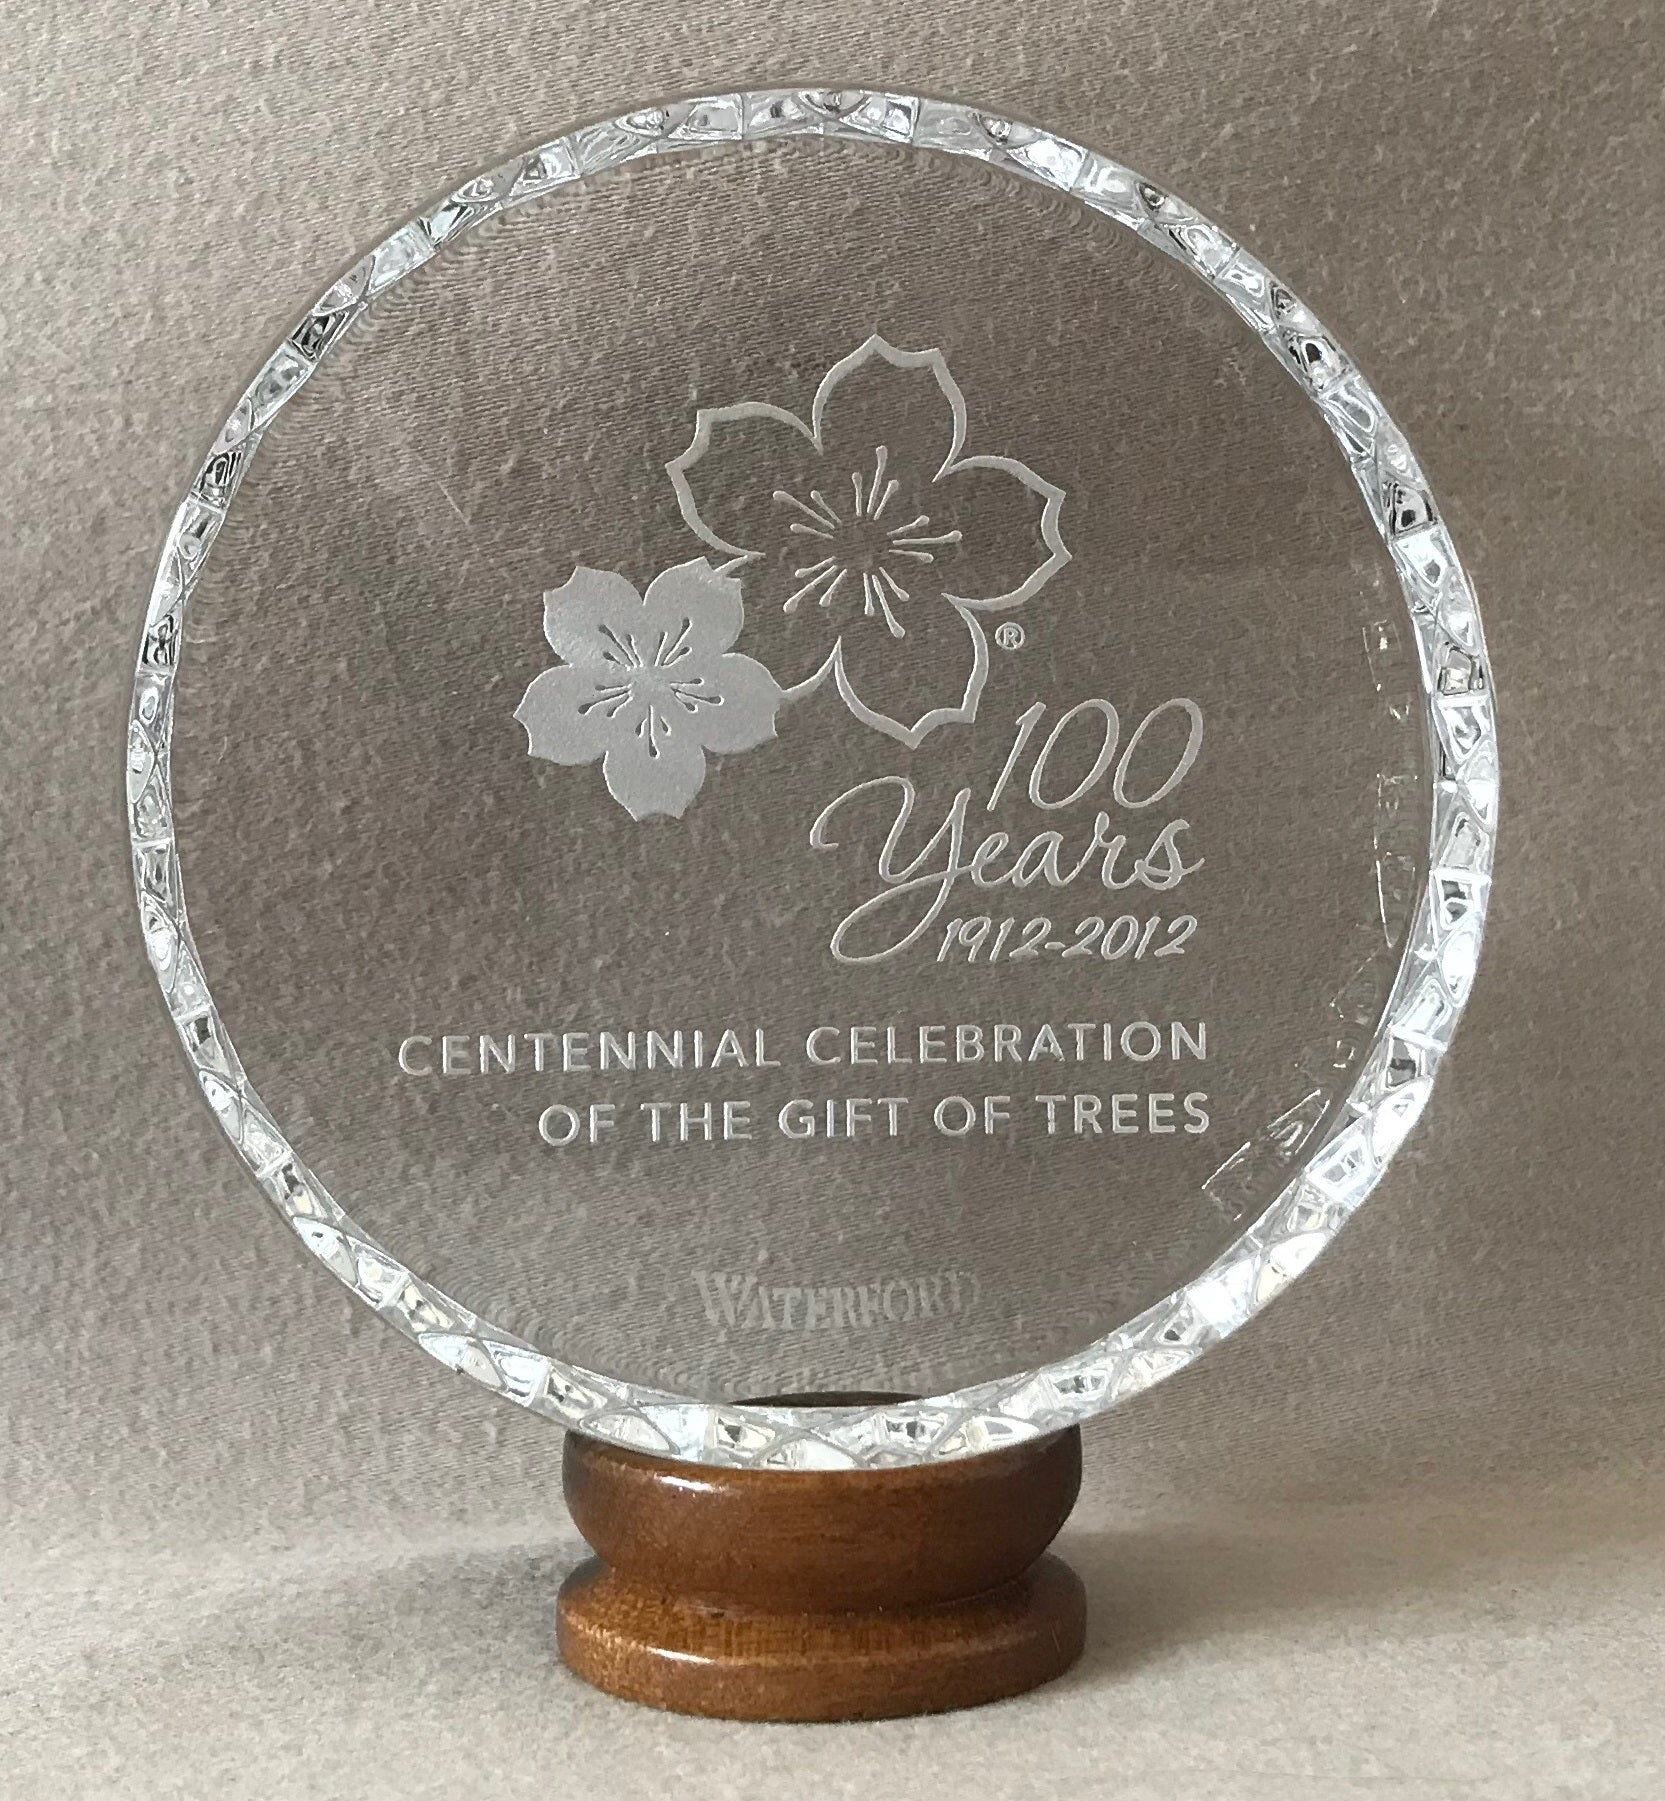 Waterford Commemorative Paperweight – National Cherry Blossom Festival (2012)